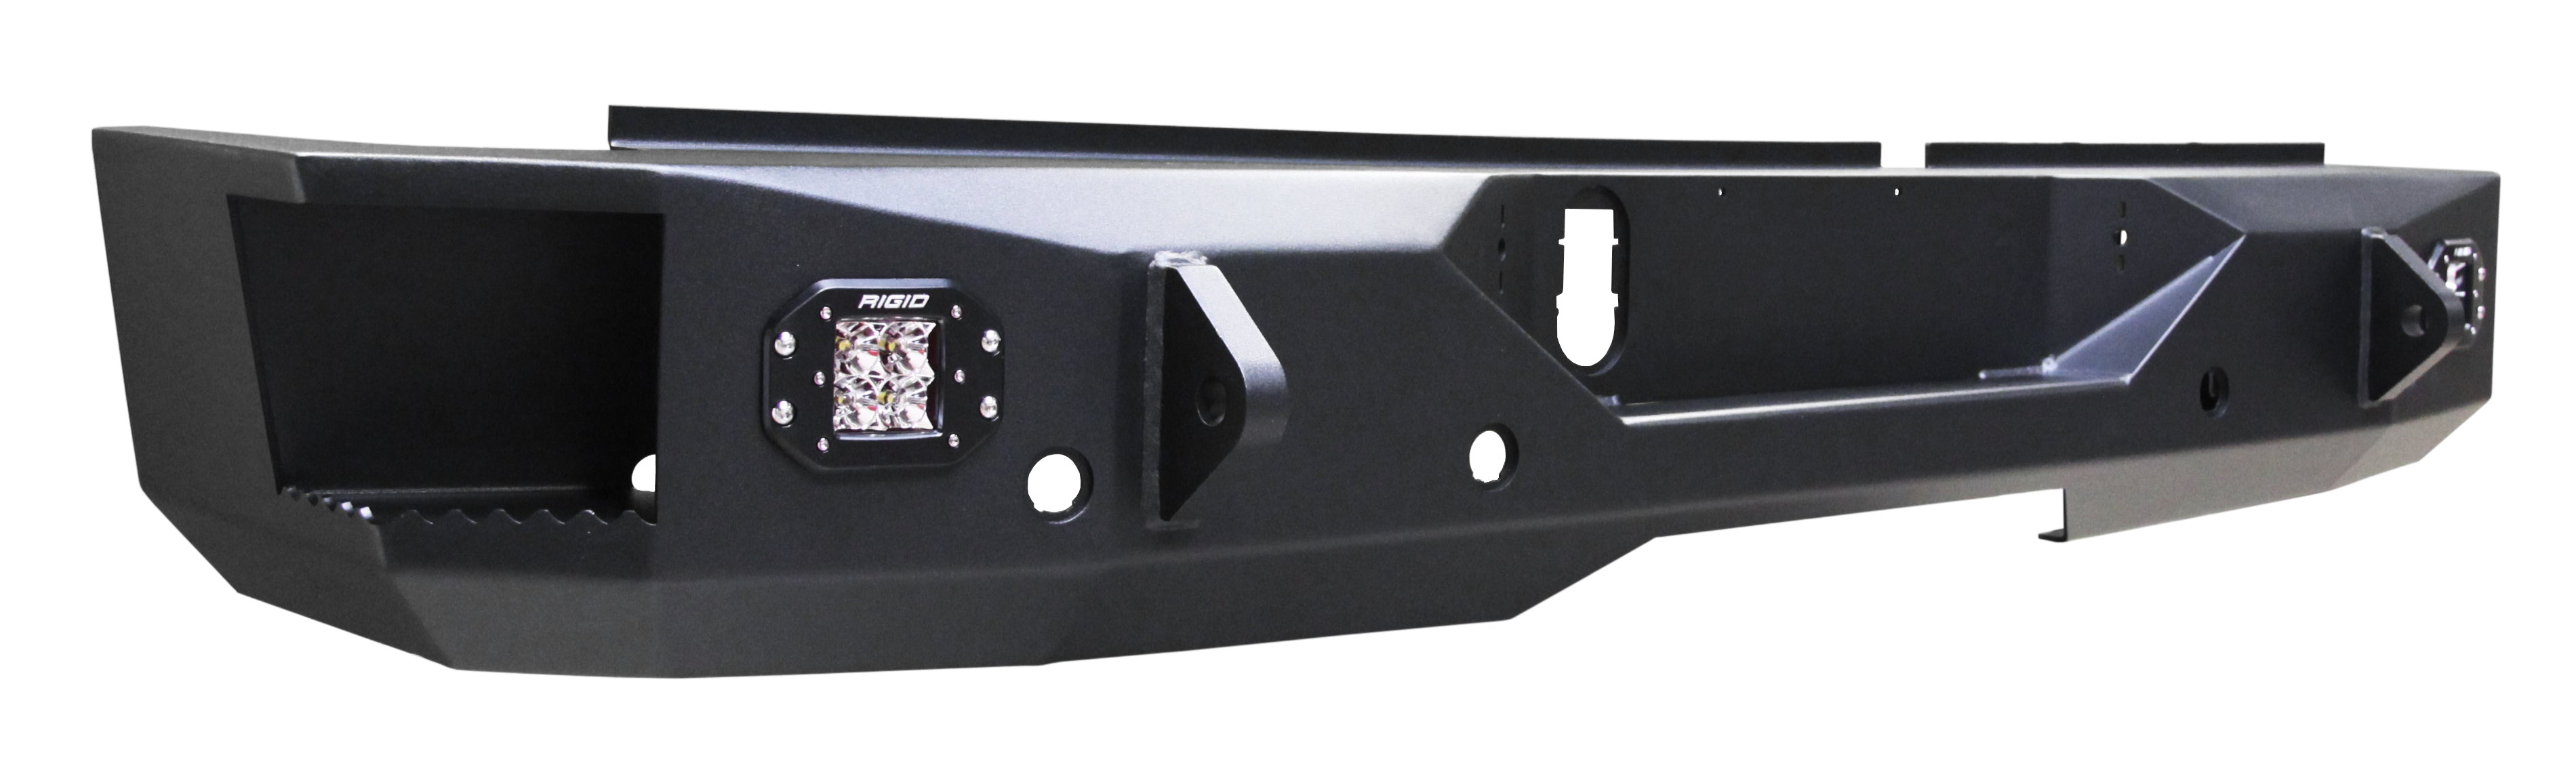 GMC - 1500 (2007-2013) Rear Bumper